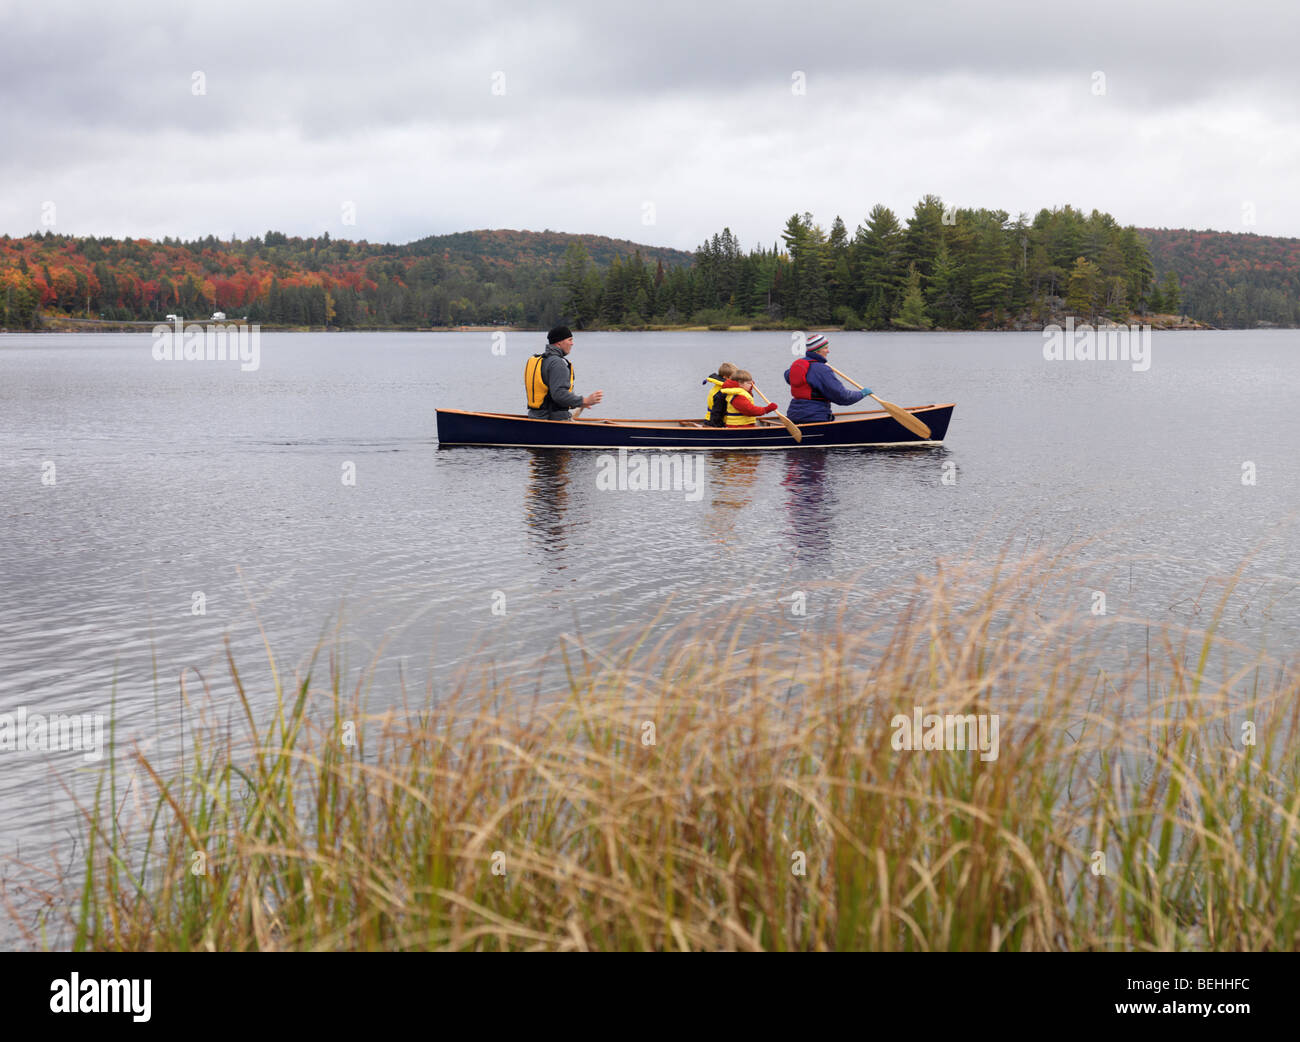 Family with children in a canoe on The Lake of Two Rivers in fall. Algonquin Provincial Park, Ontario, Canada. - Stock Image